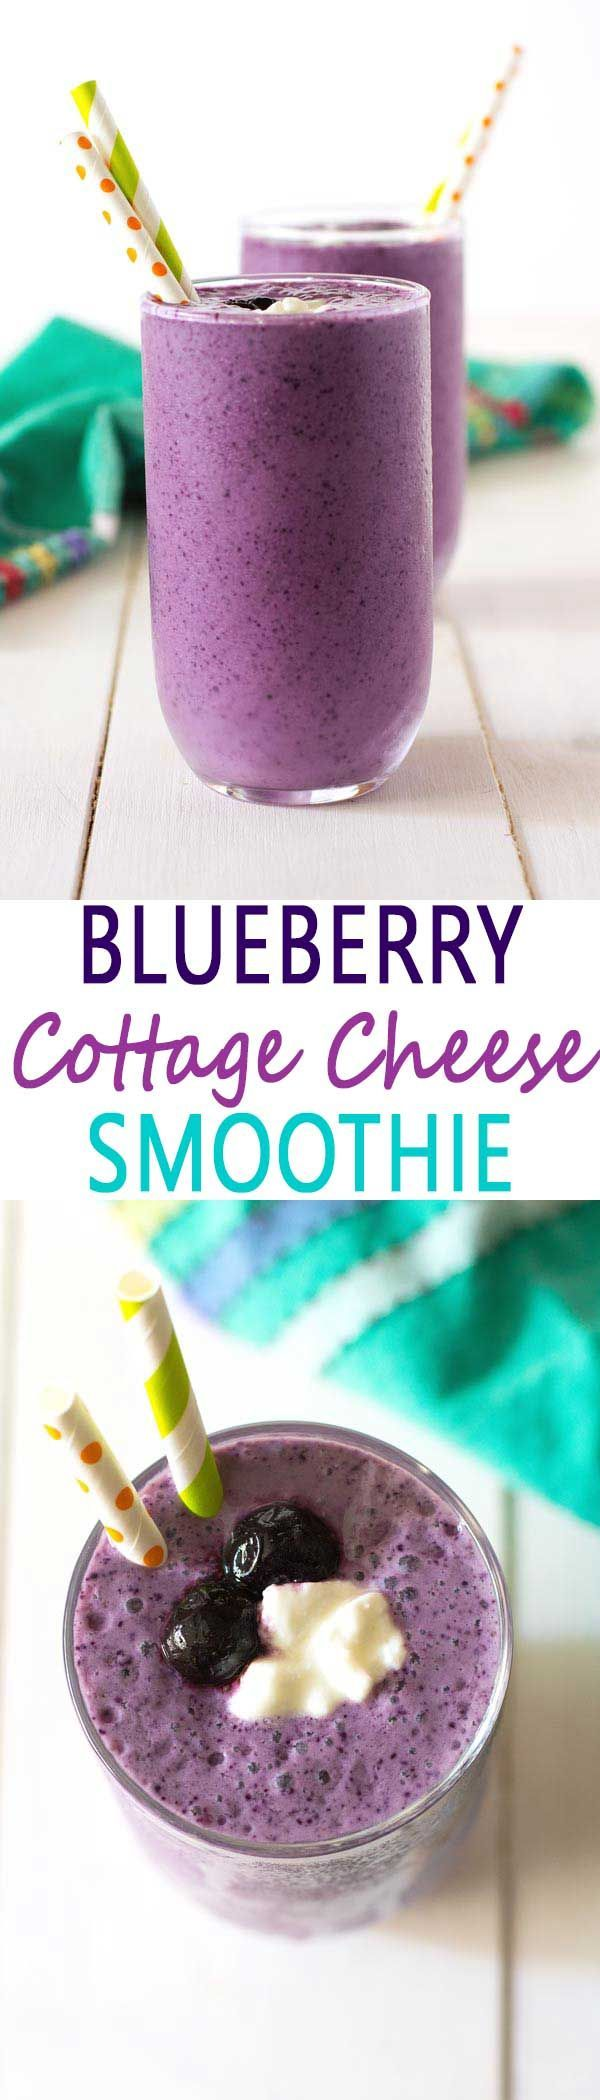 This healthy blueberry cottage cheese smoothie without yogurt almost tastes like blueberry cheesecake!